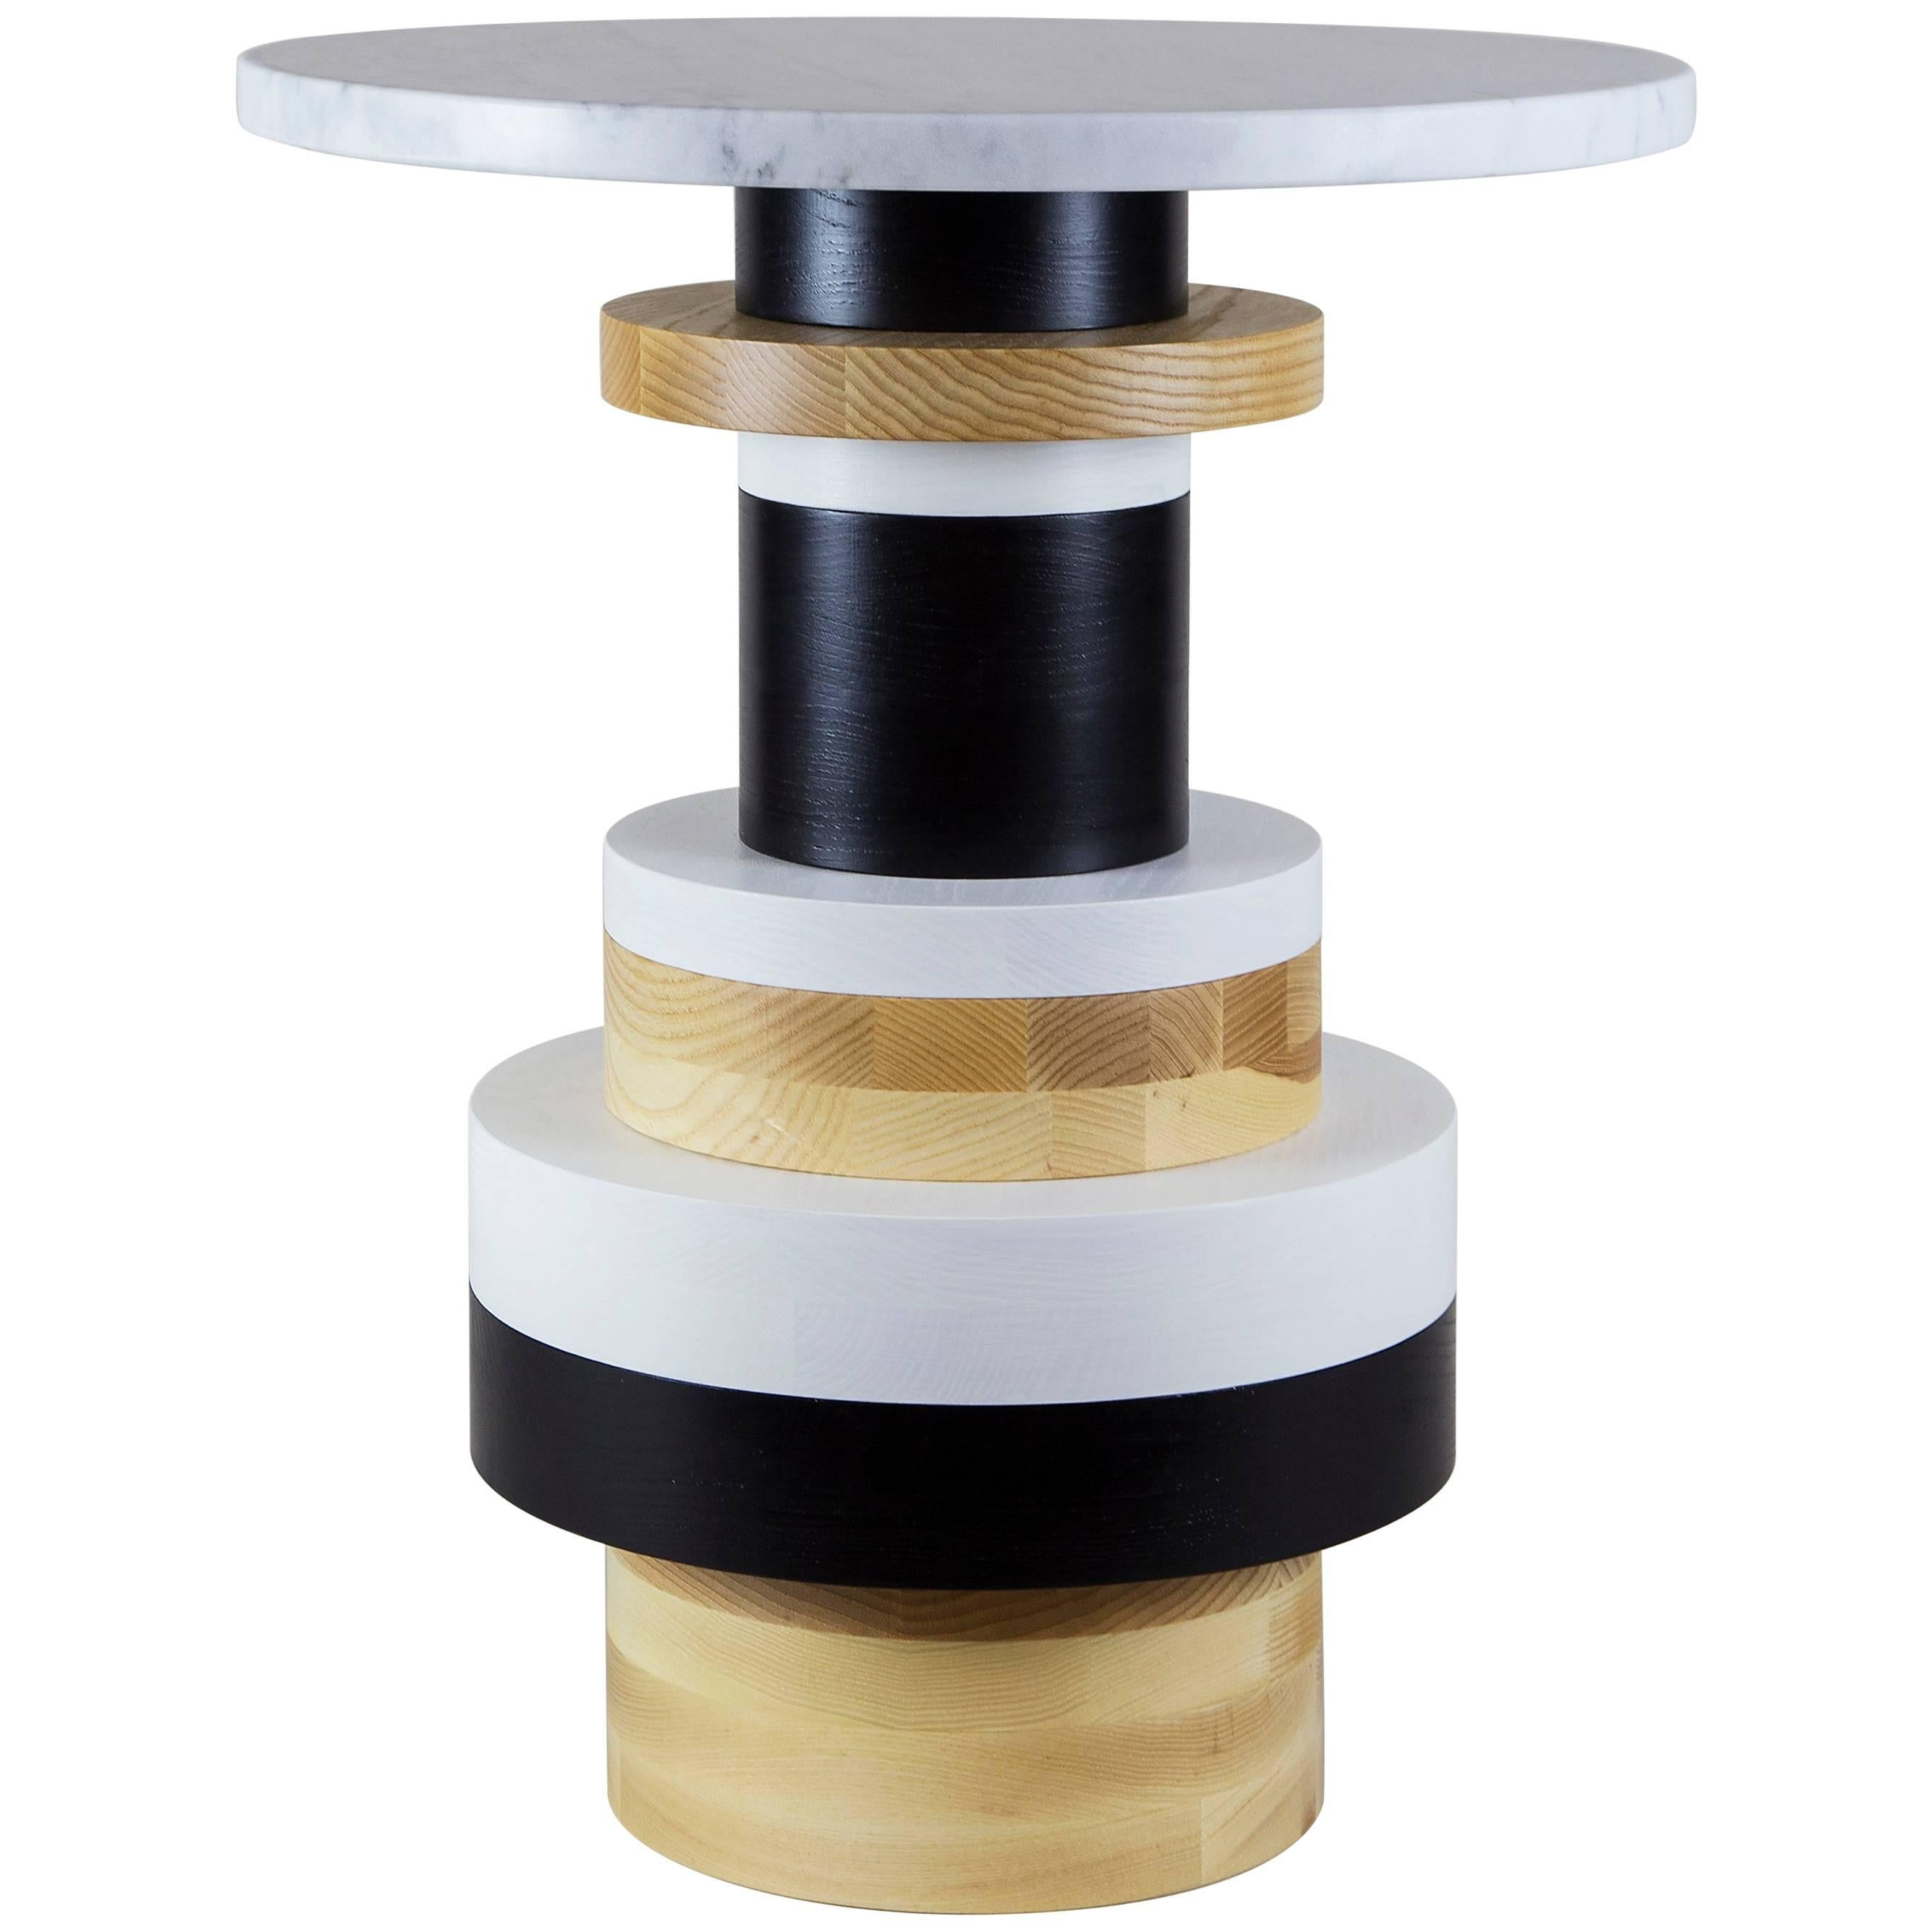 Customizable Tall Sass Side Table from Souda, Large Marble Top, Made to Order